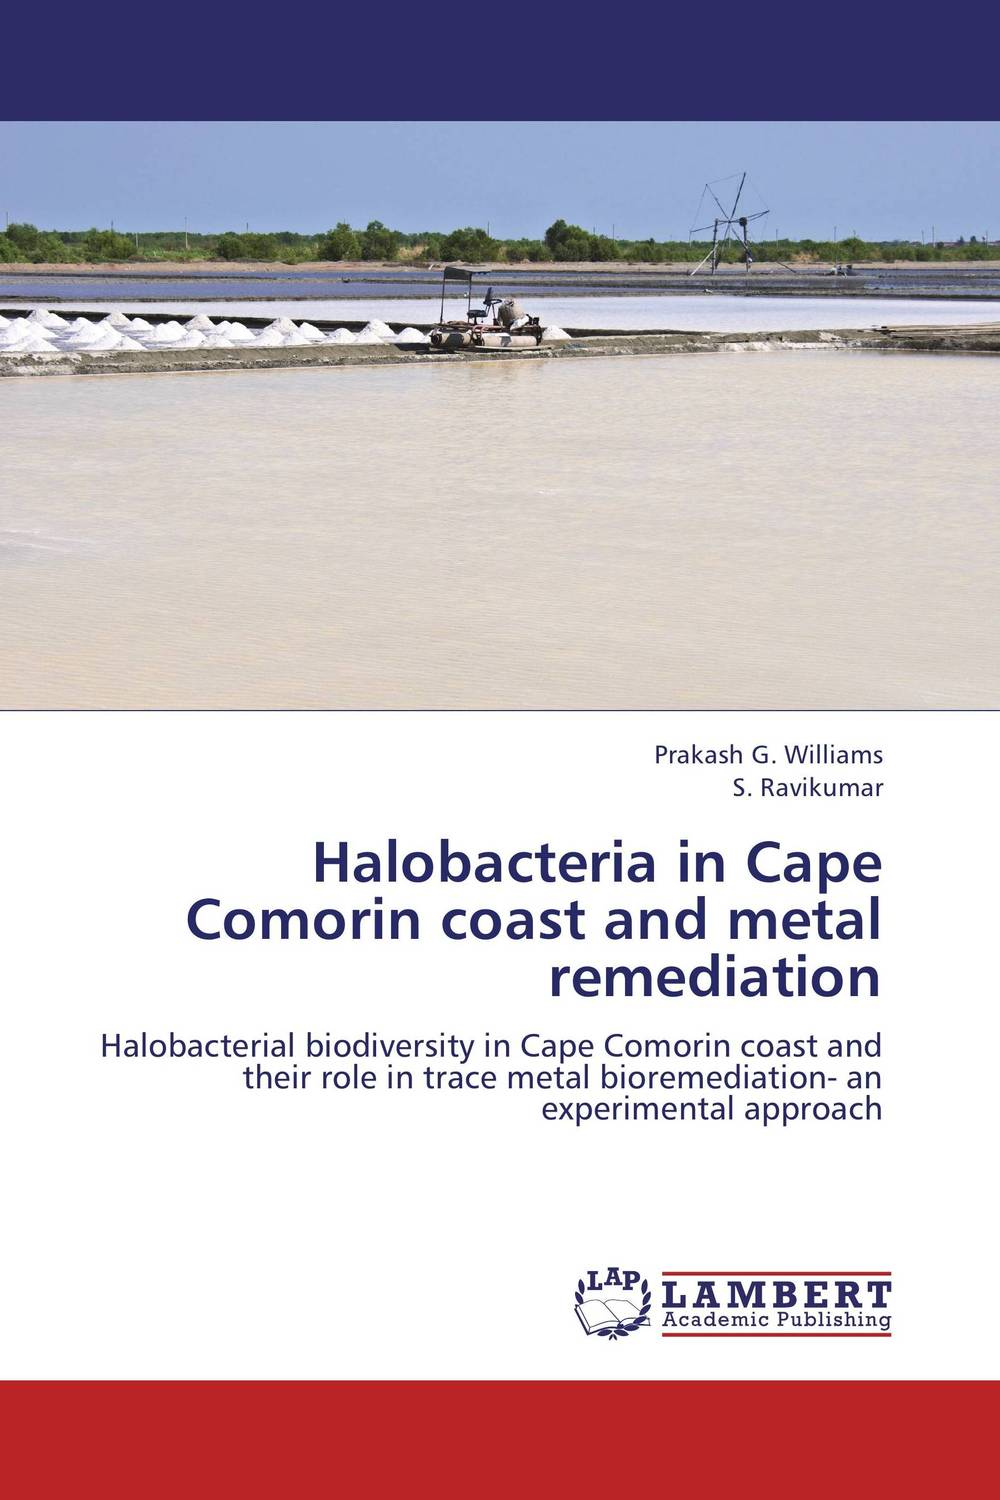 Halobacteria in Cape Comorin coast and metal remediation archaea ancient microbes extreme environments and the origin of life 50